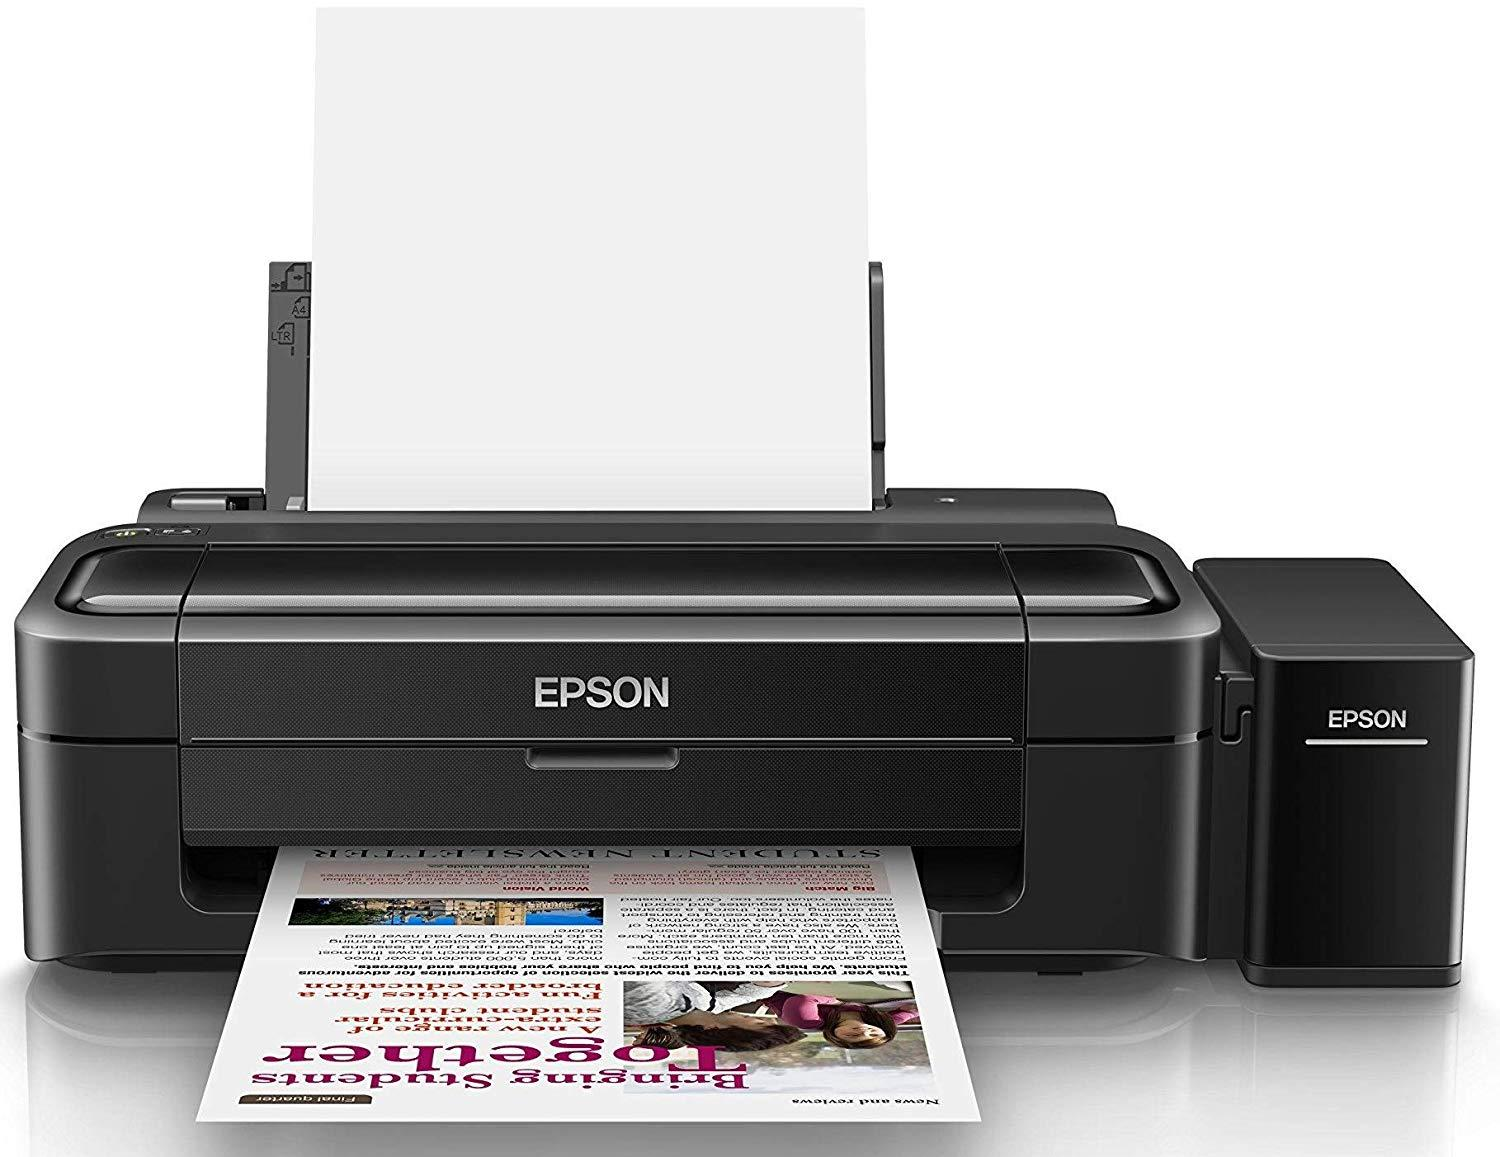 Buy Epson Inkjets Inks at Best Prices Online in Bangladesh